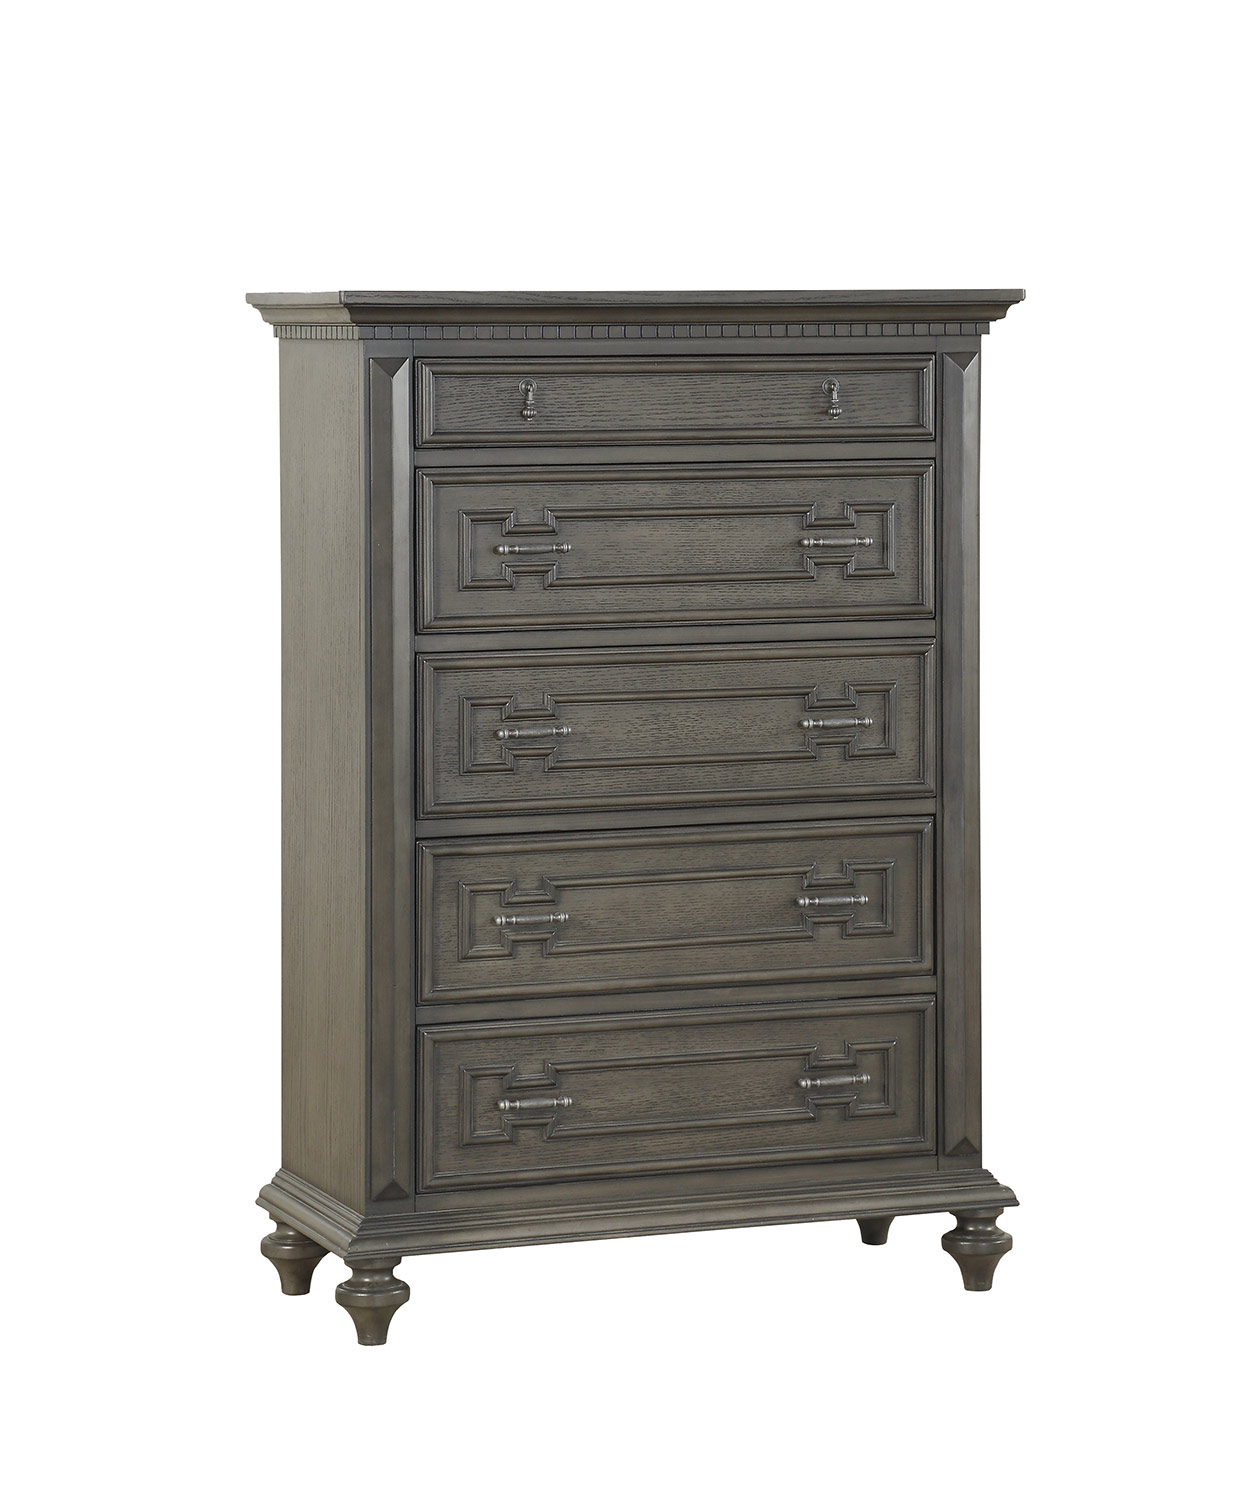 Homelegance Hillridge Chest